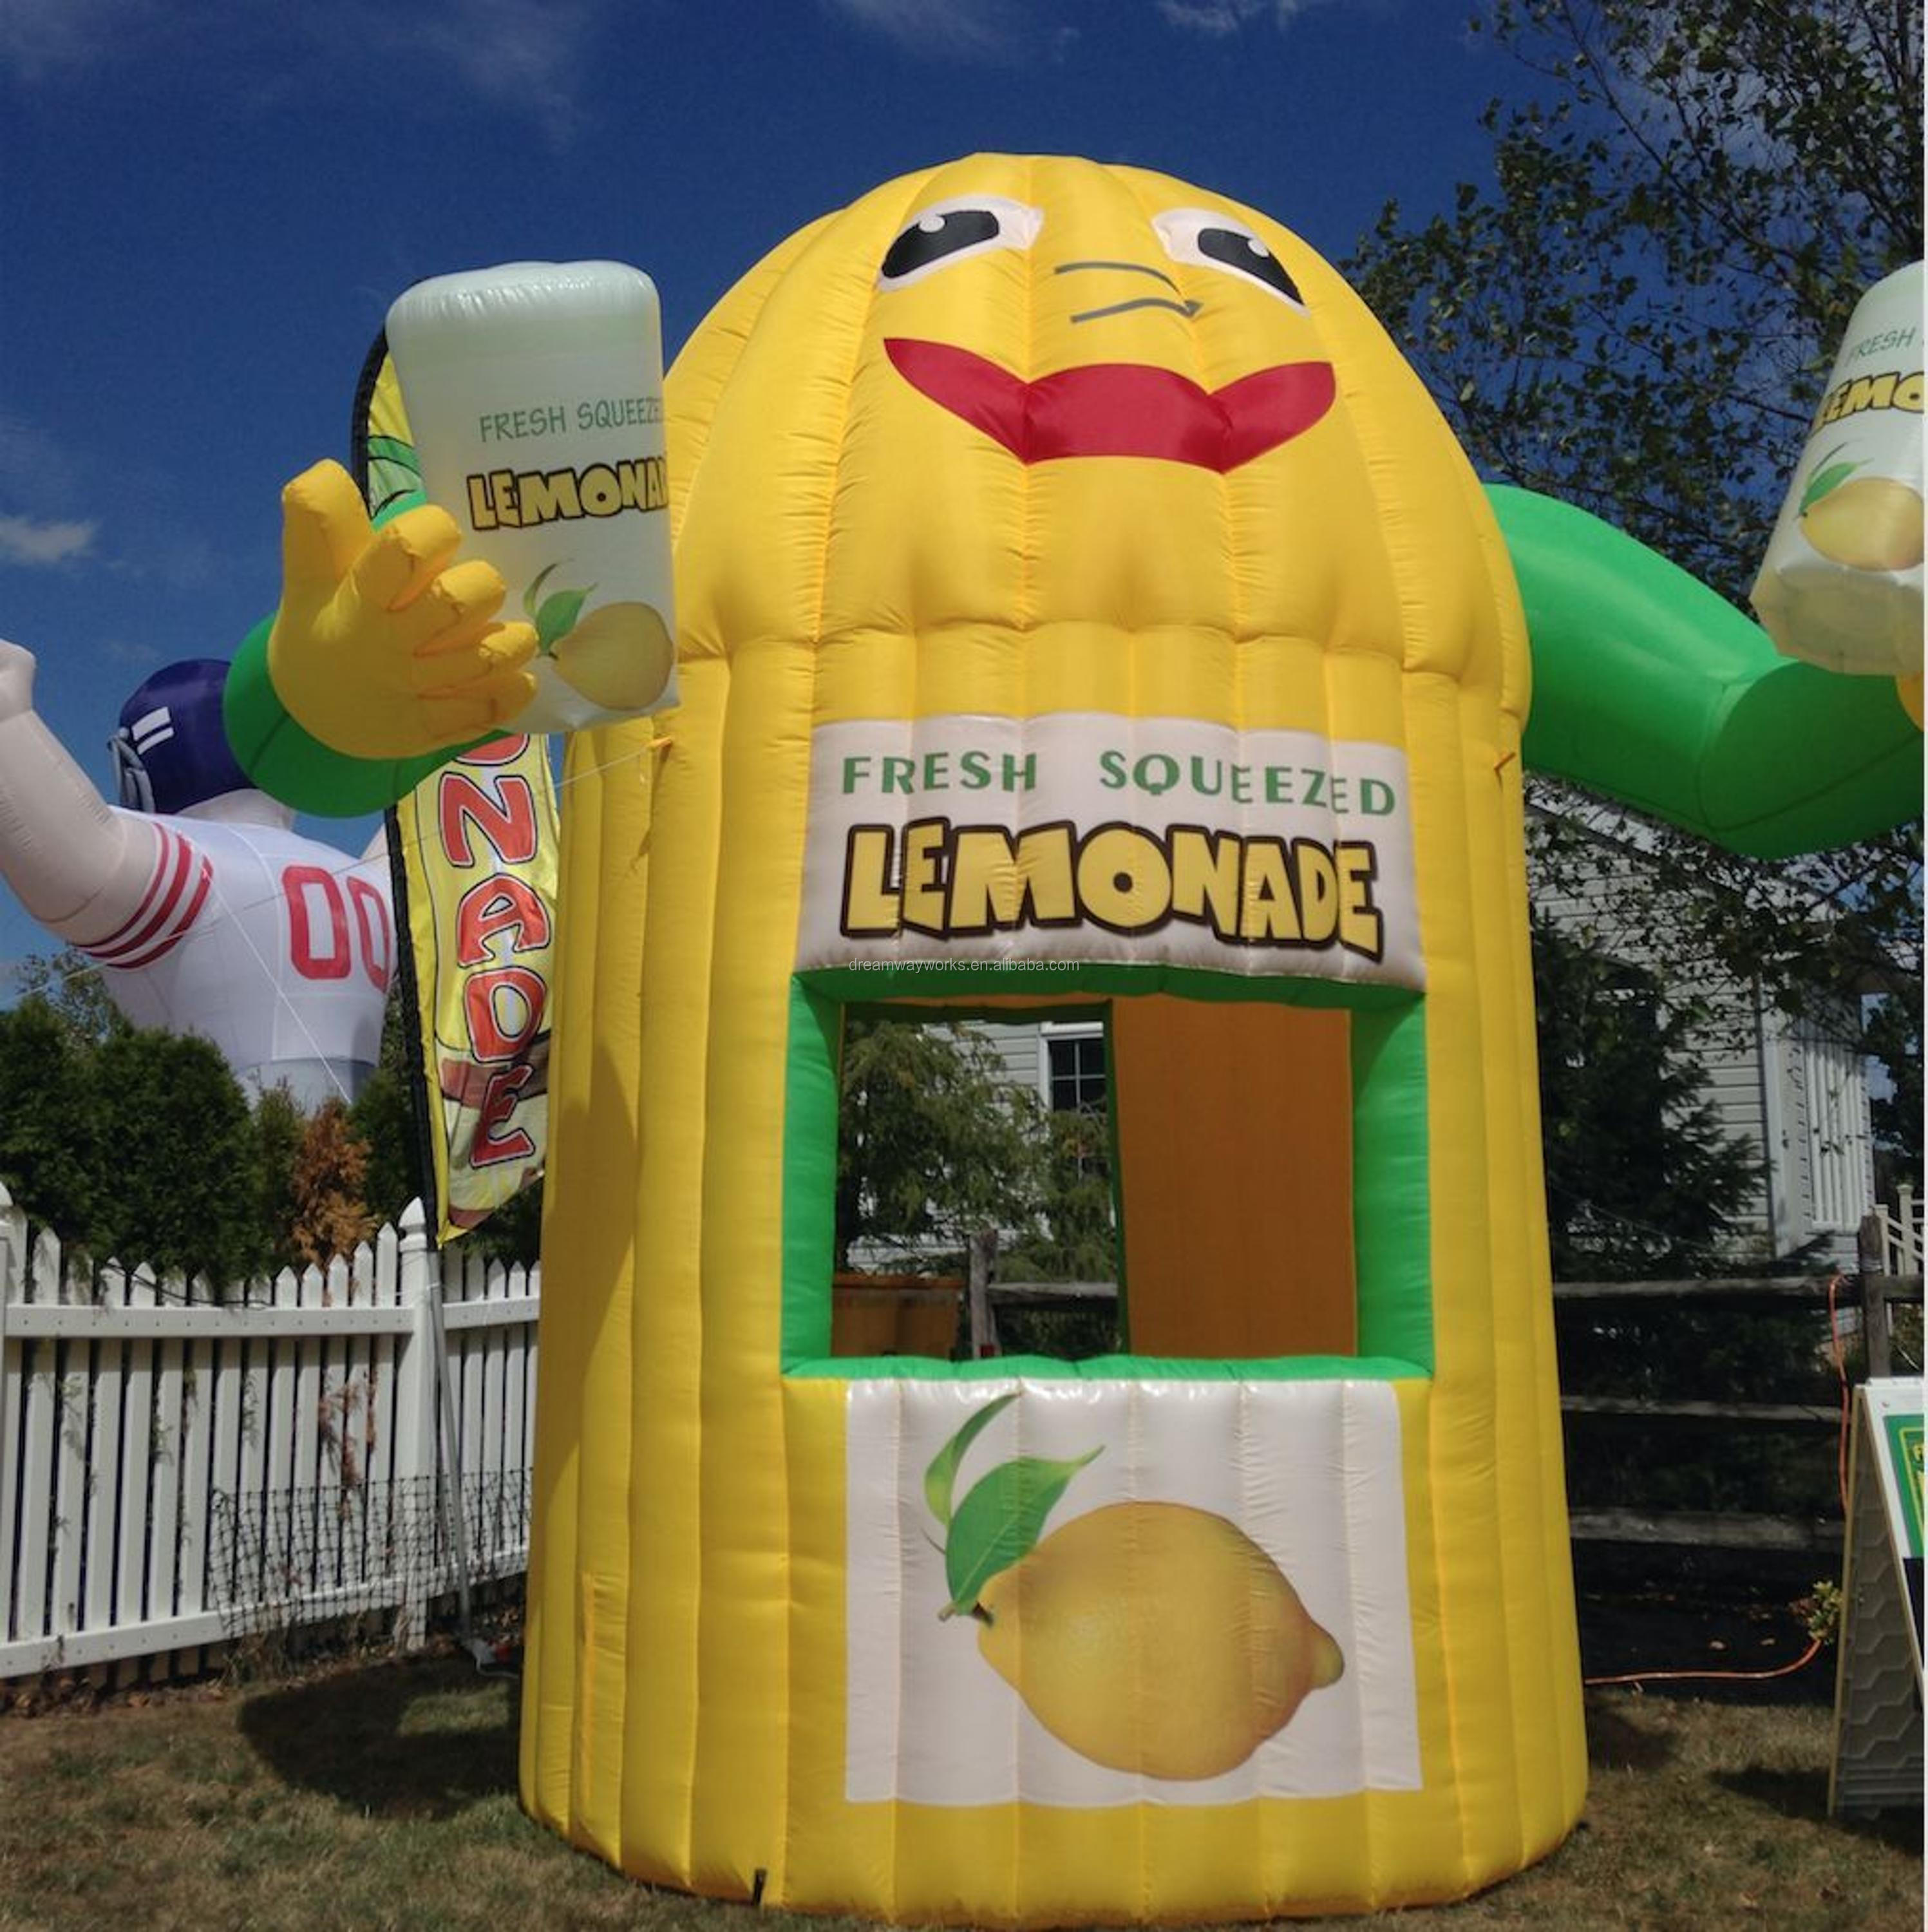 2017 Hot sale inflatable lemonade stand, lemonade stands tent with banners